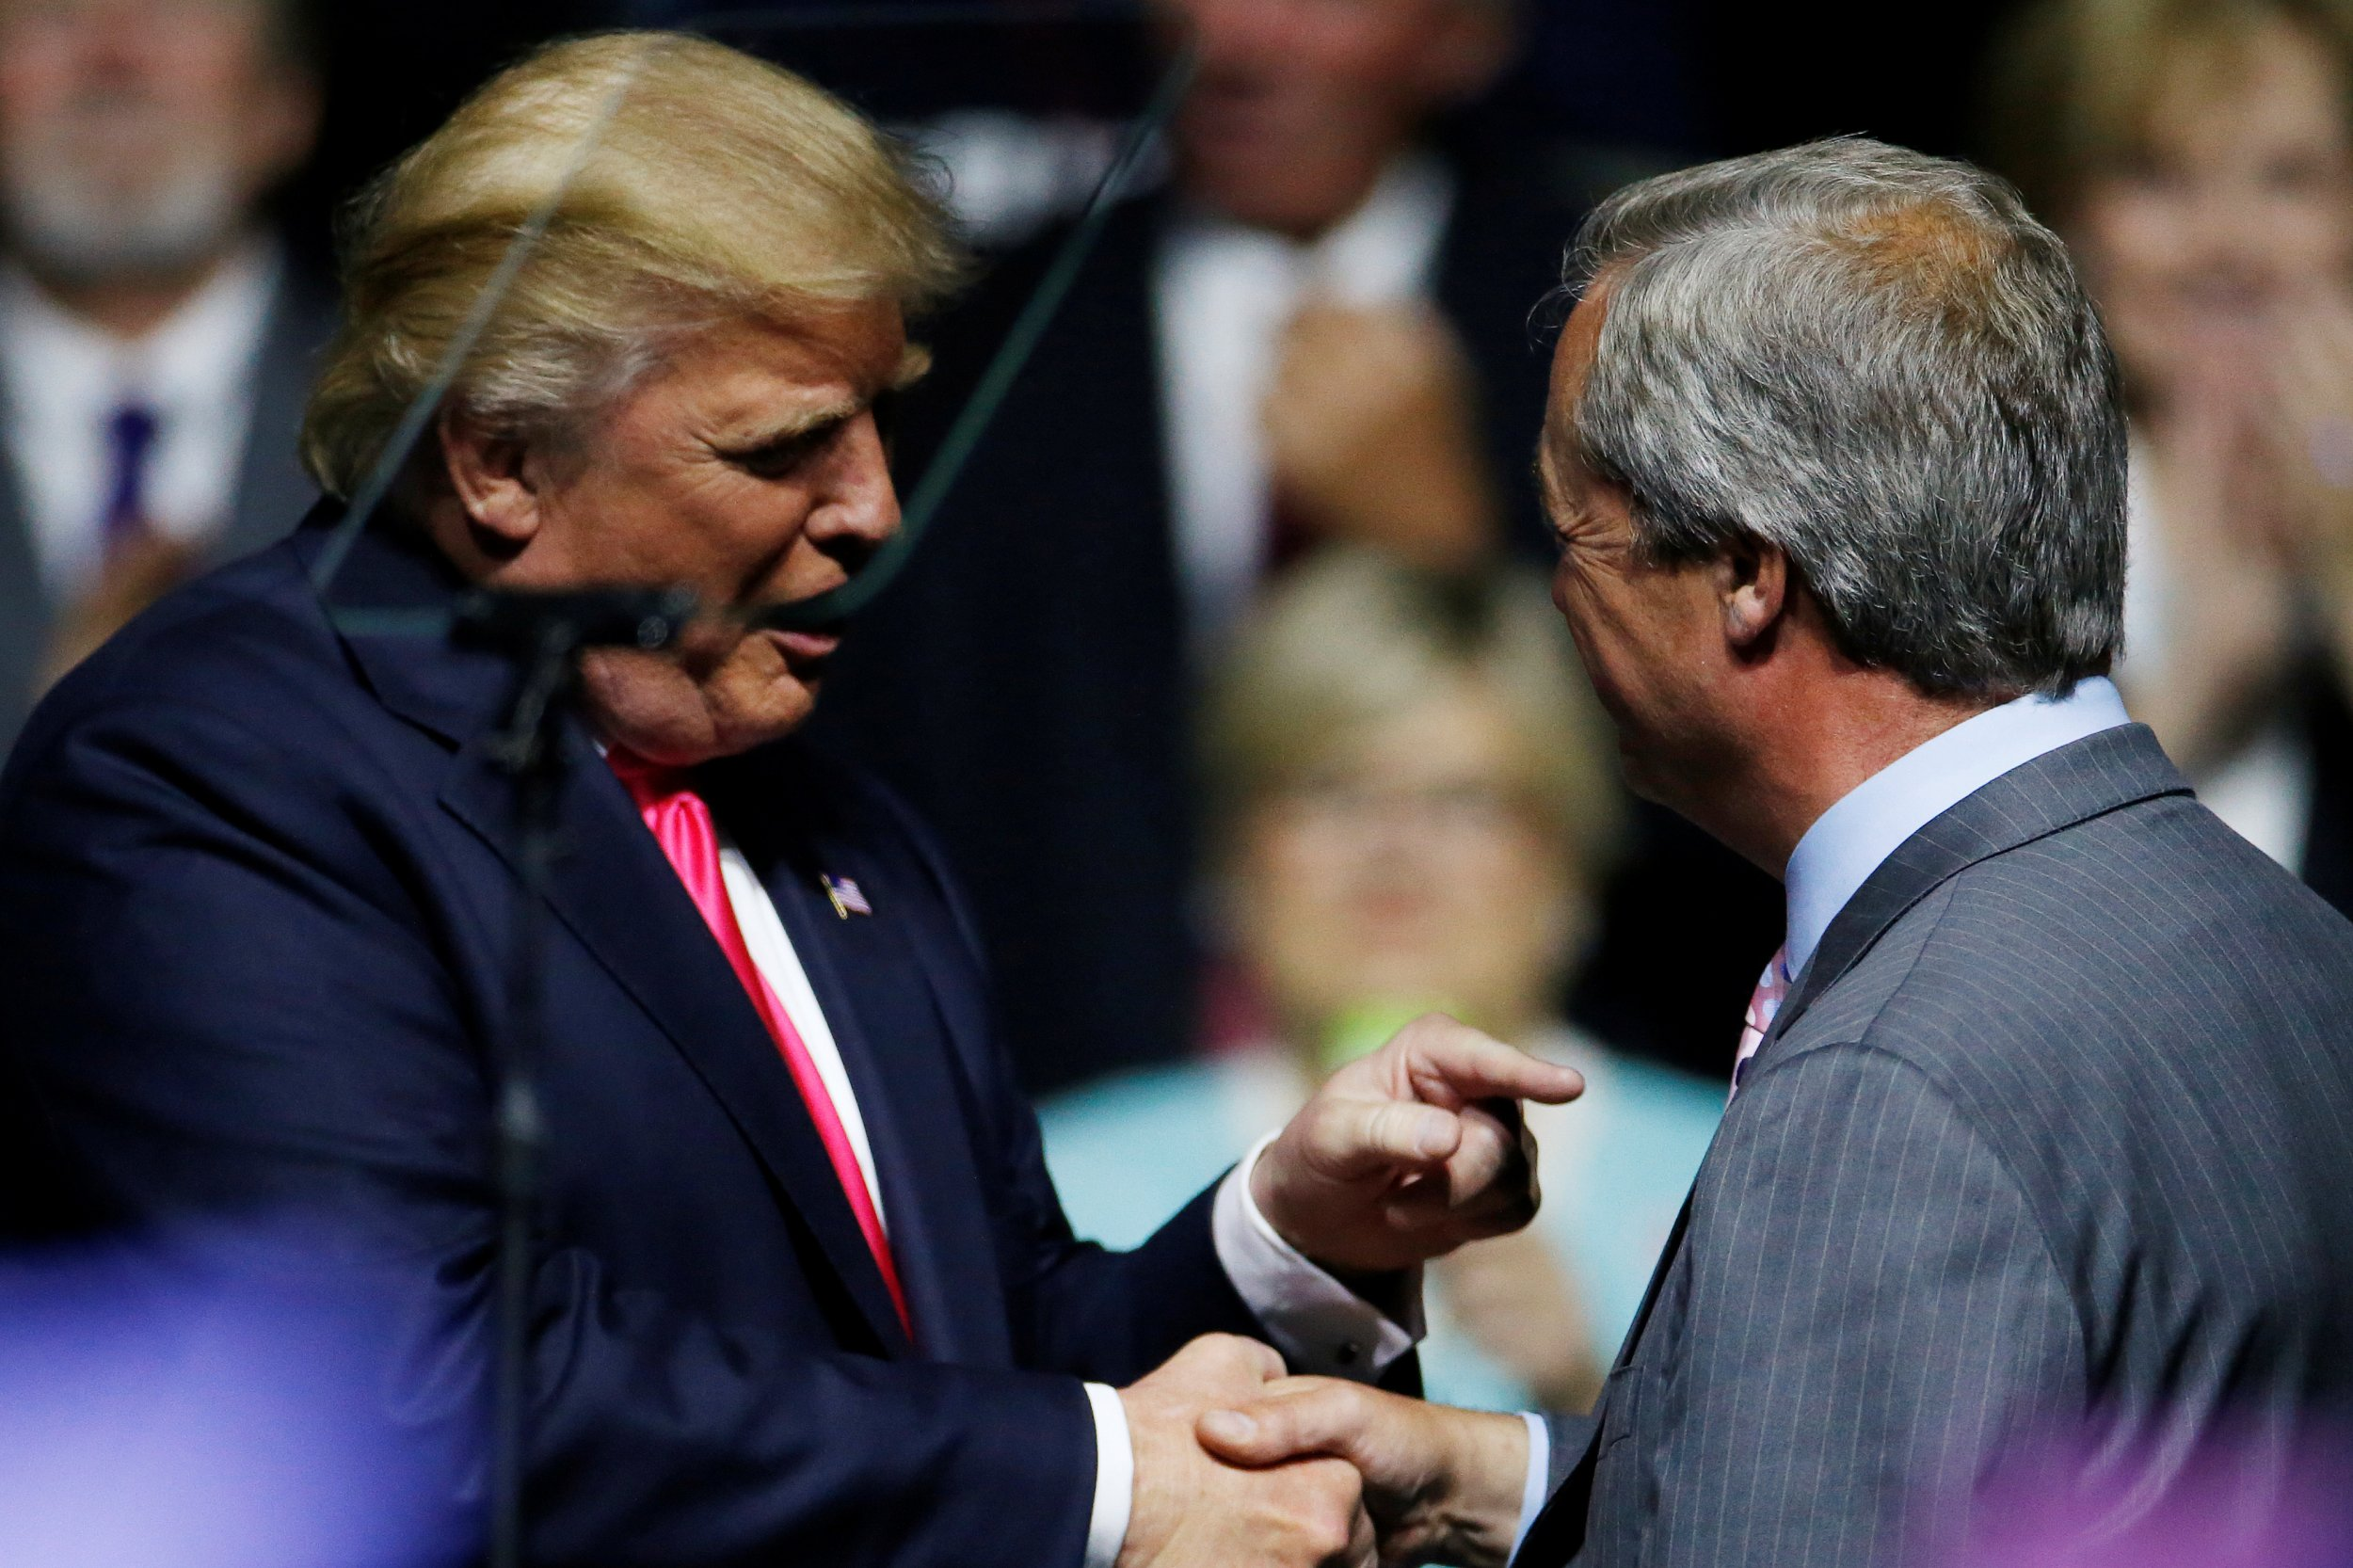 Jews Should Concern Americans More Than Russian Influence, Nigel Farage Says